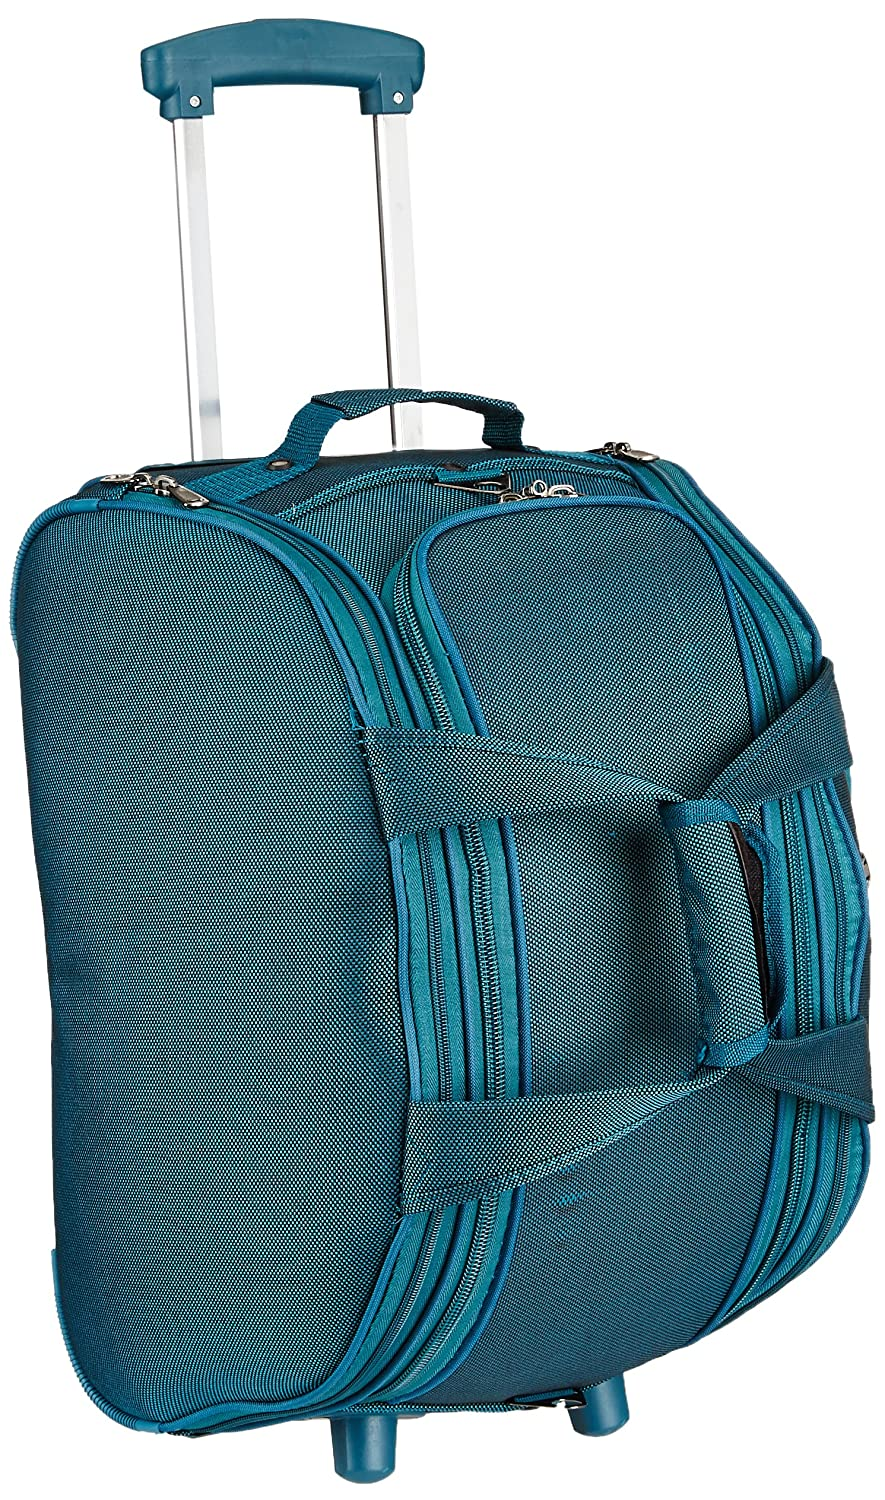 F Gear Cooter Polyester Ocean Blue Small 36 Liter Travel Duffle bag-20  inch  Amazon.in  Bags ade8dfc1885ab